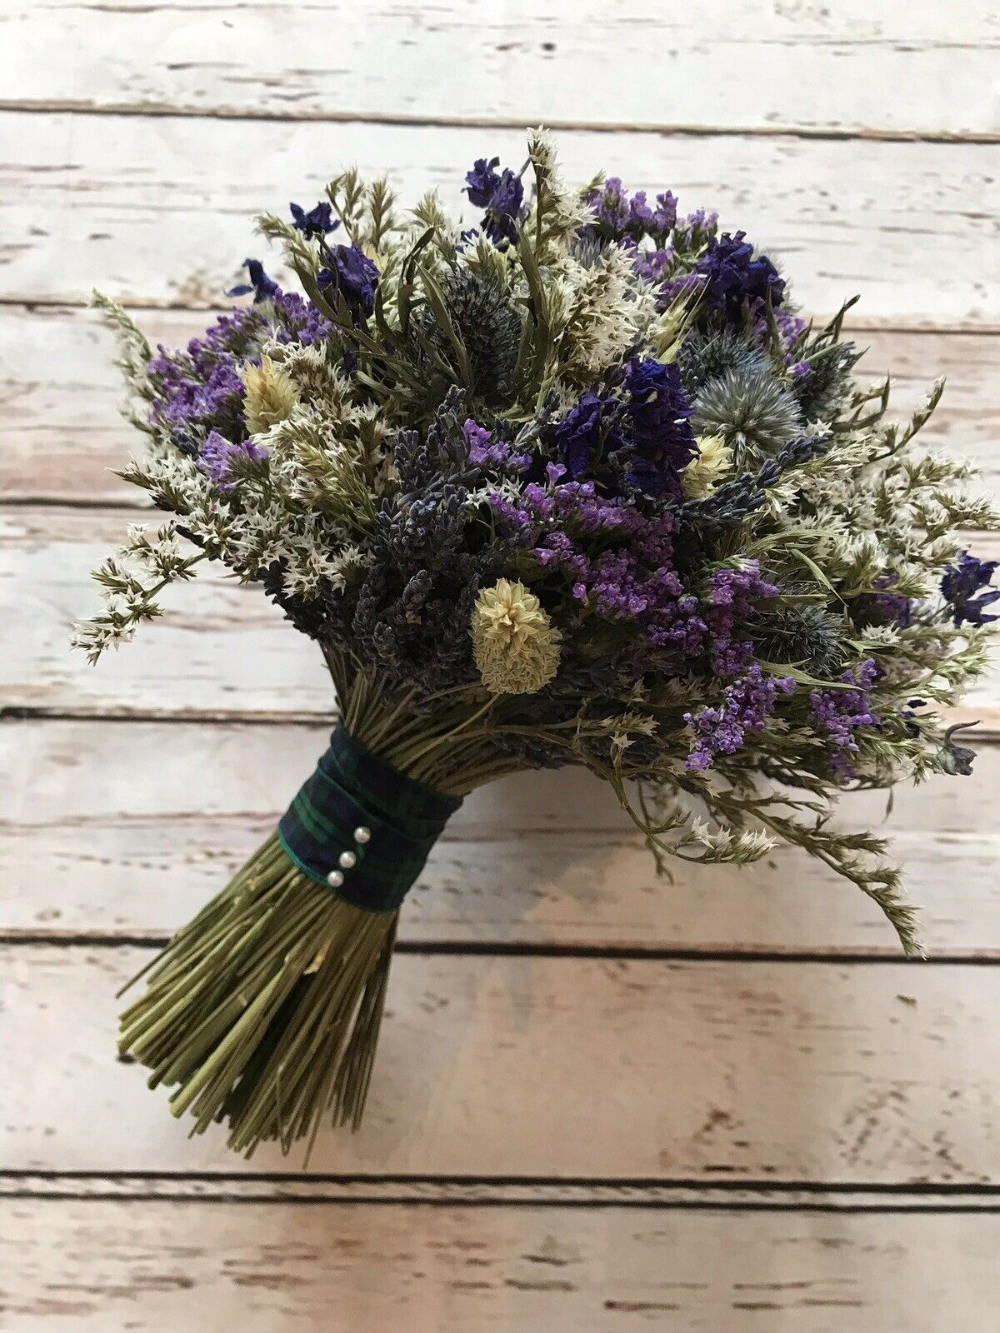 Dried Flower Wedding Bouquet Thistle Scottish Bride Tartan